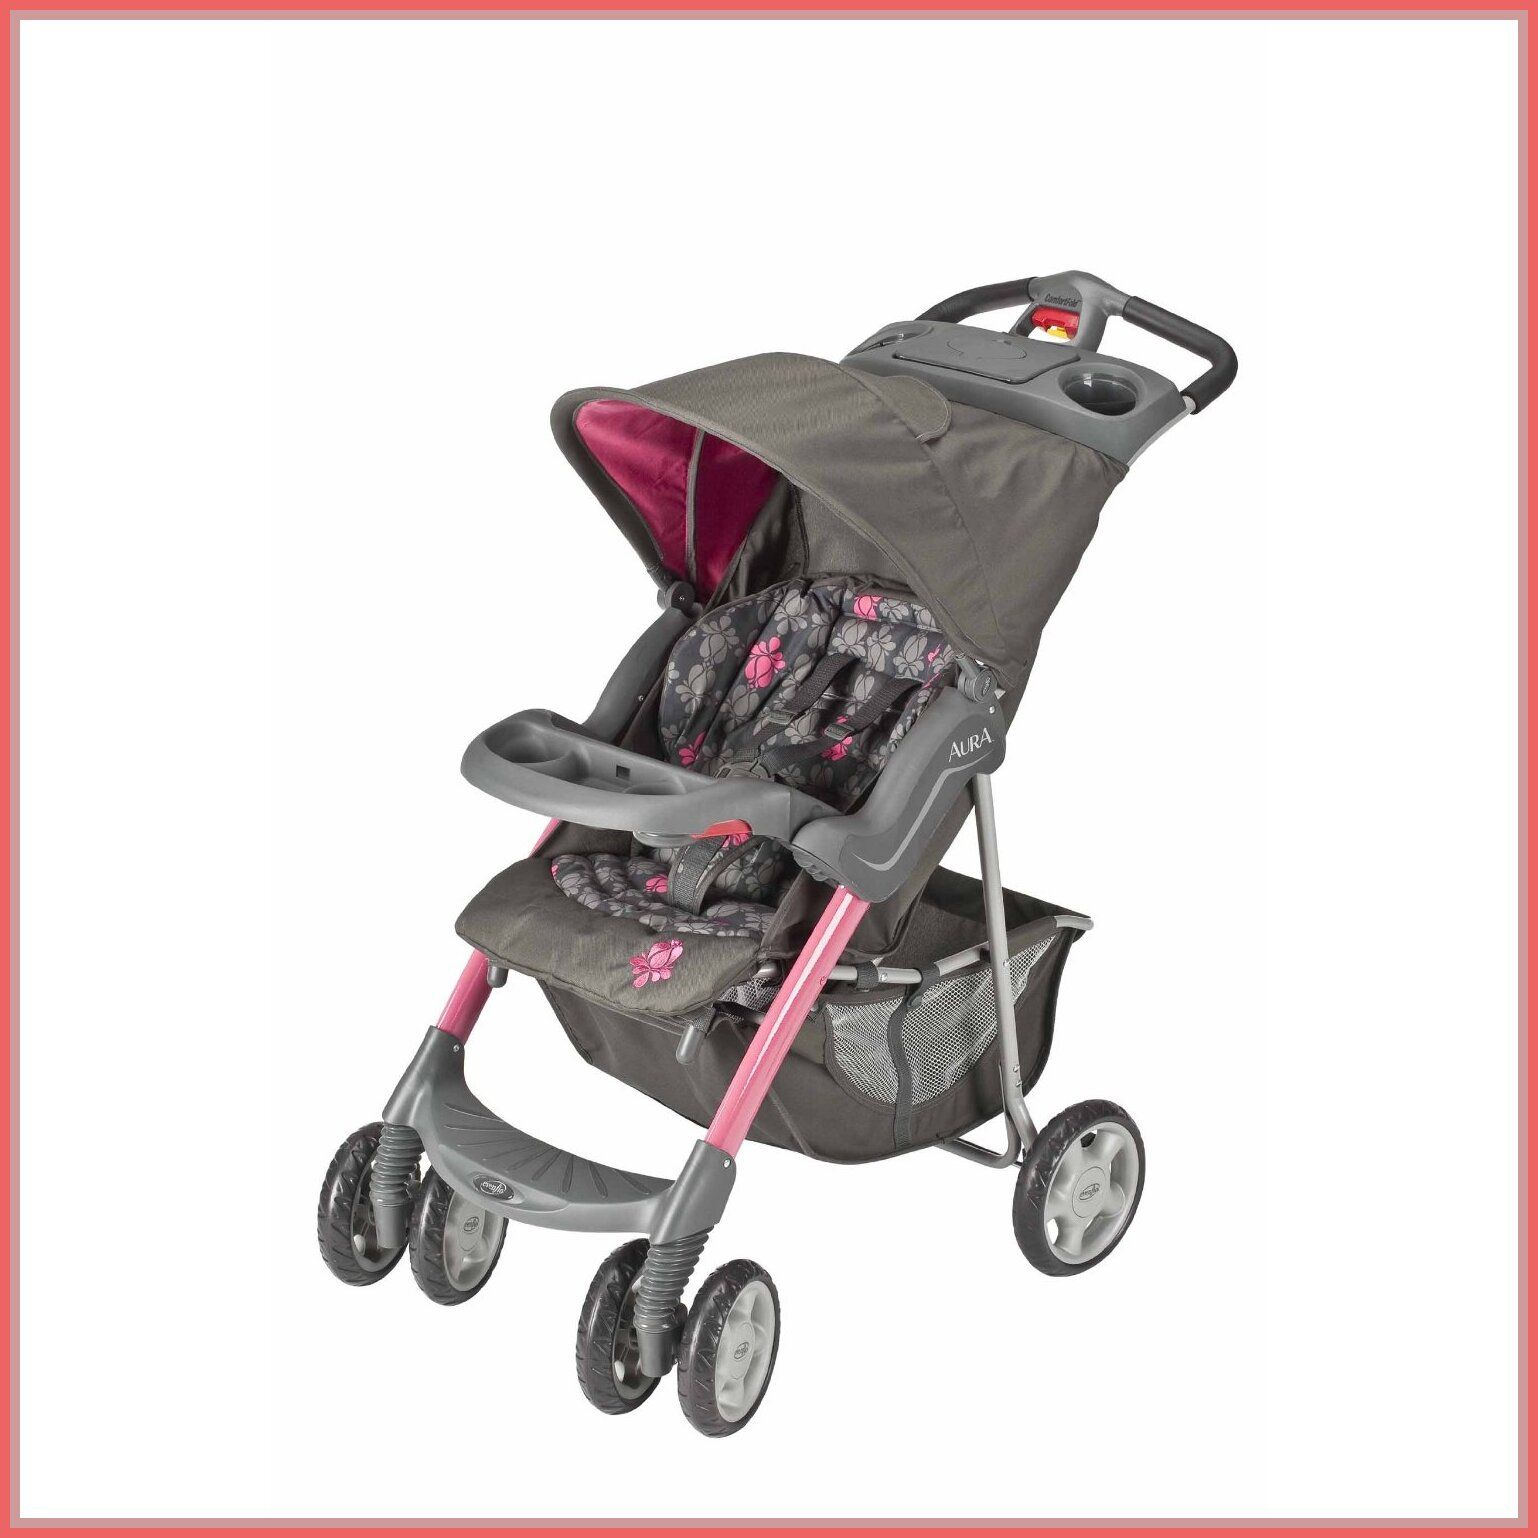 113 reference of car seat and stroller evenflo in 2020